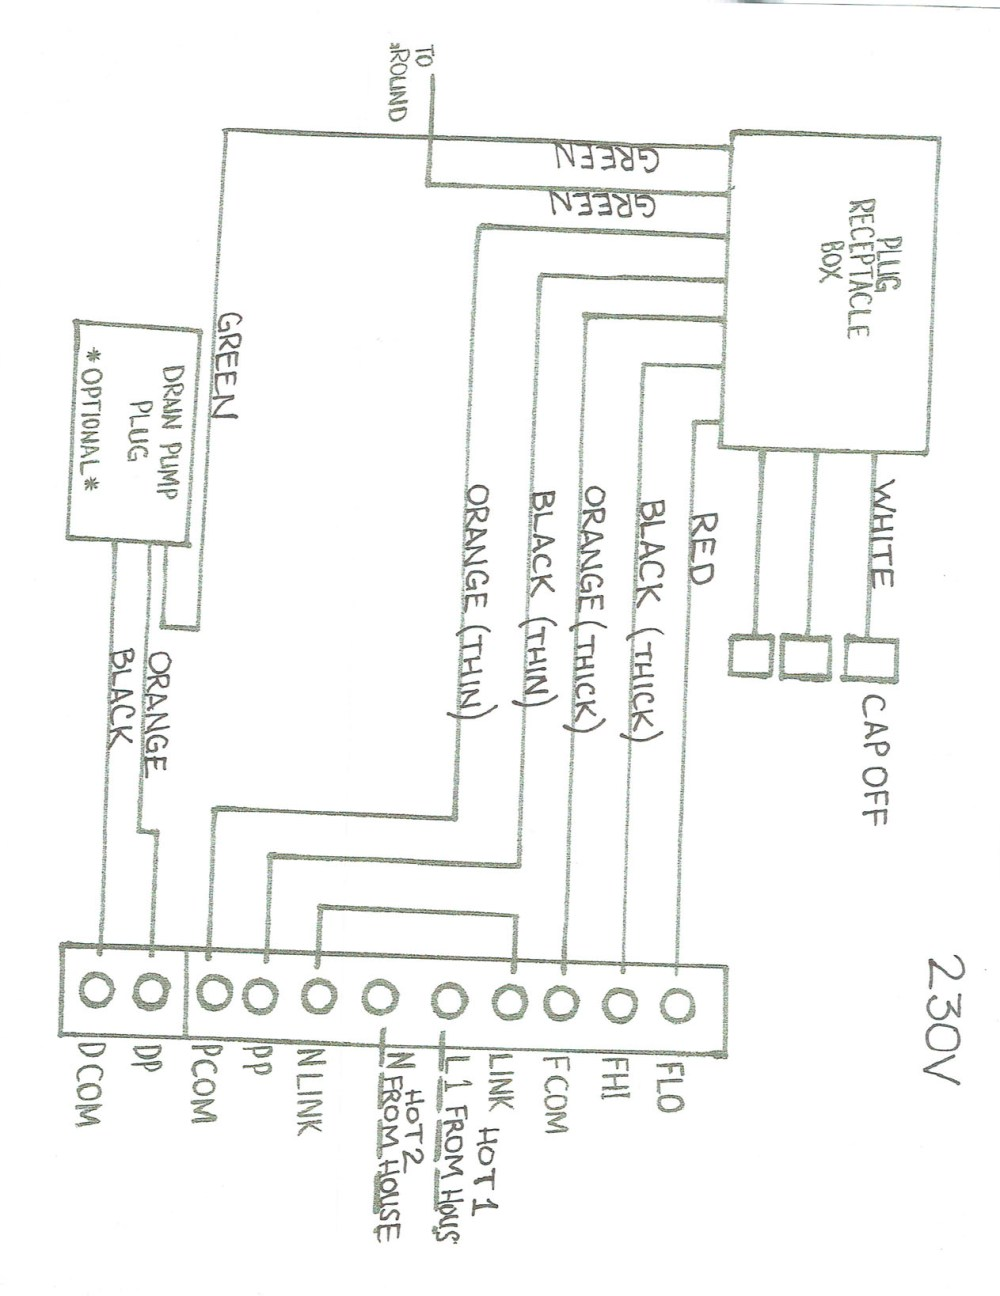 medium resolution of audi 7a wiring diagram wiring diagrams 03 audi tt wiring schematic audi 7a wiring diagram